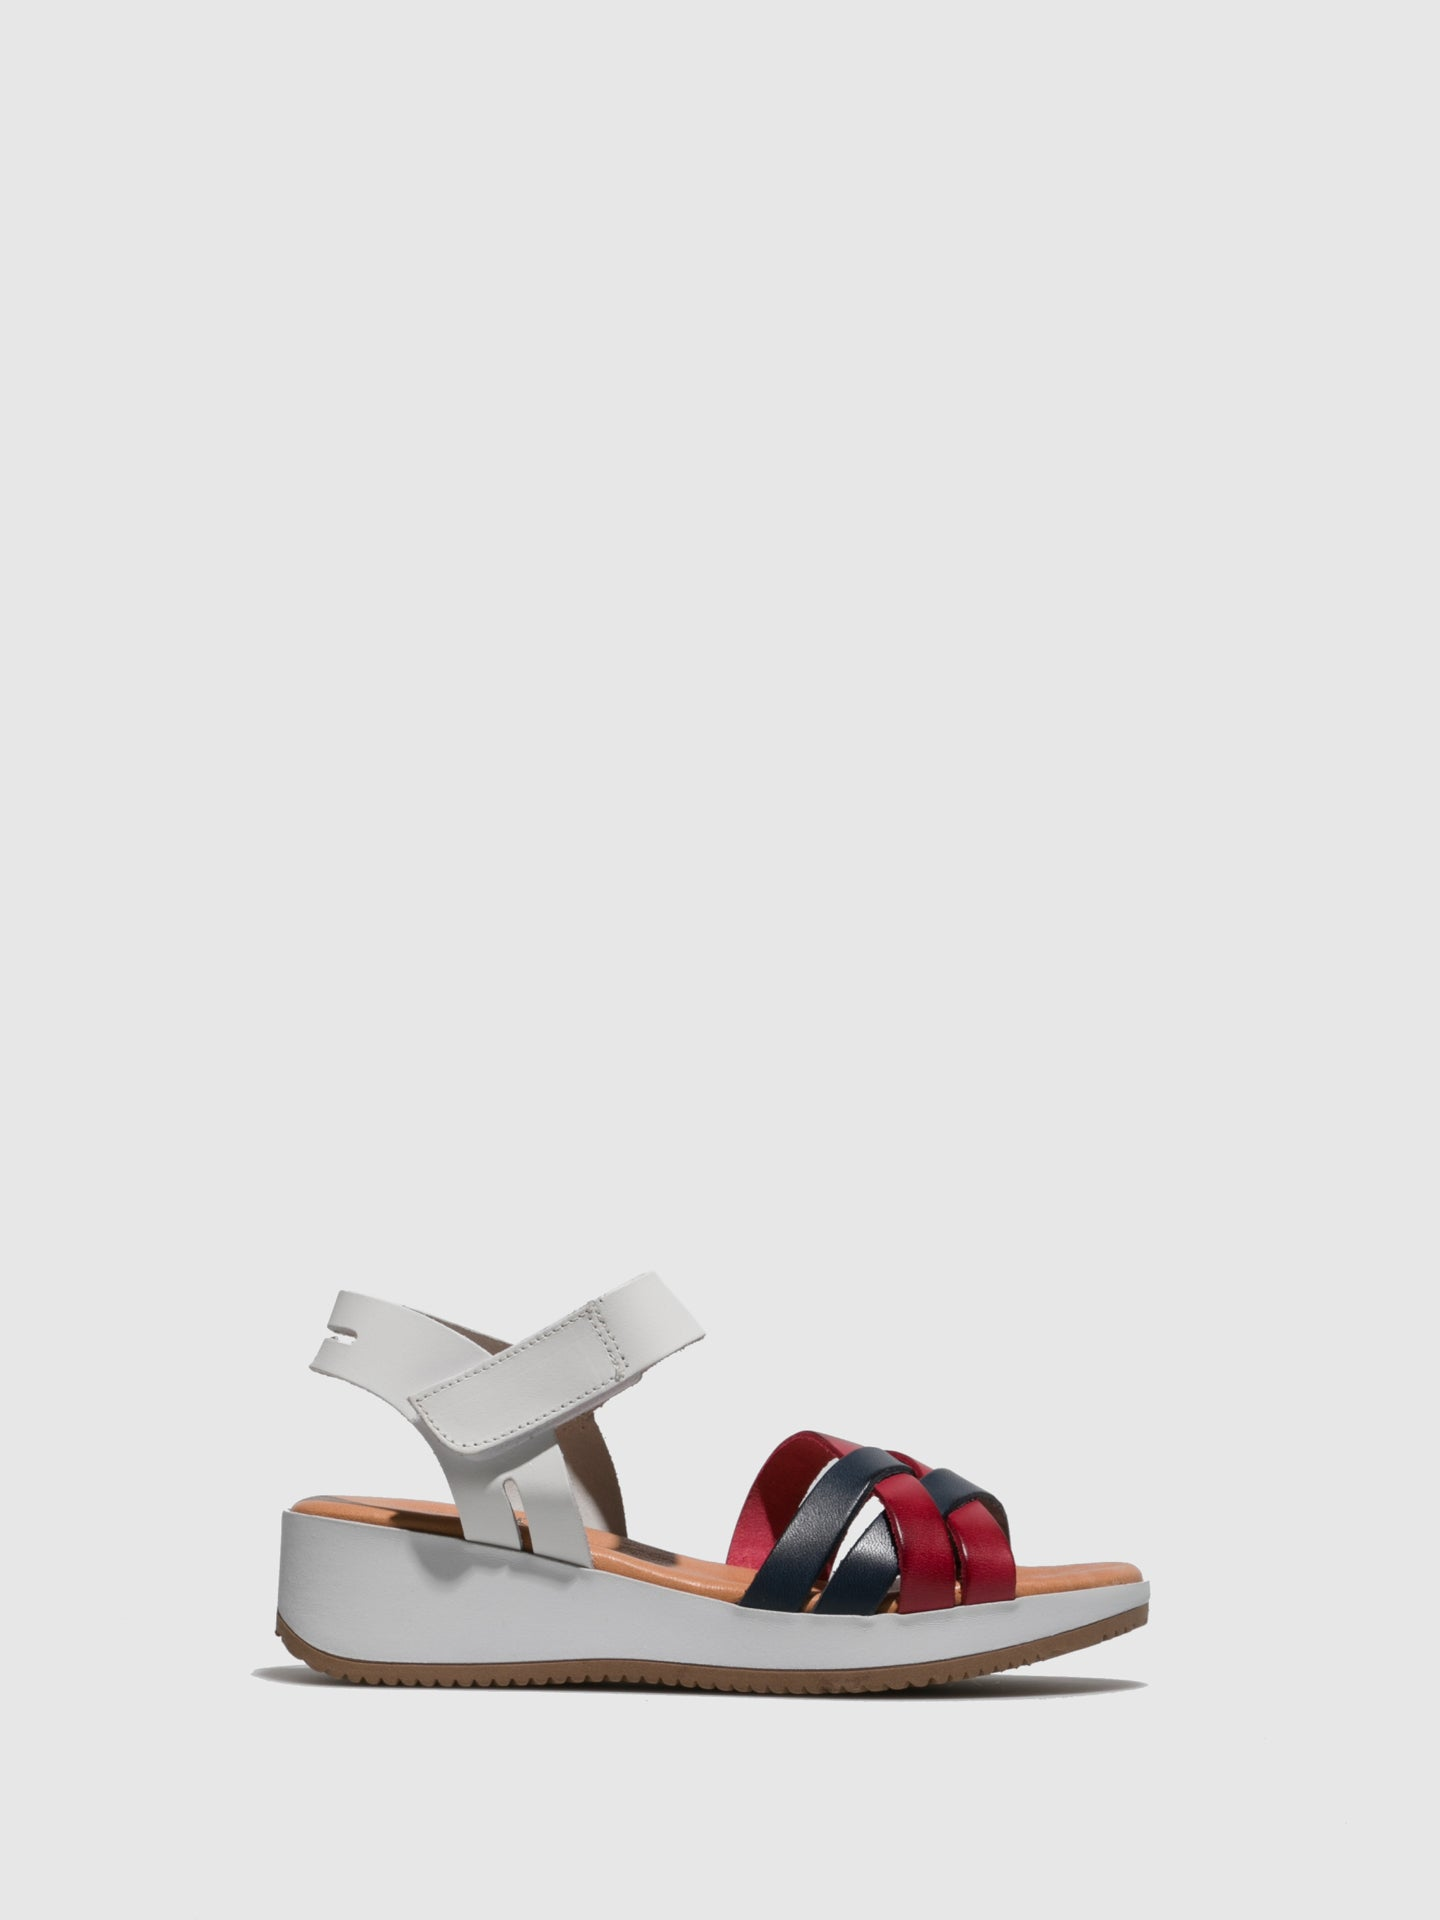 Marila Shoes Red White Velcro Sandals